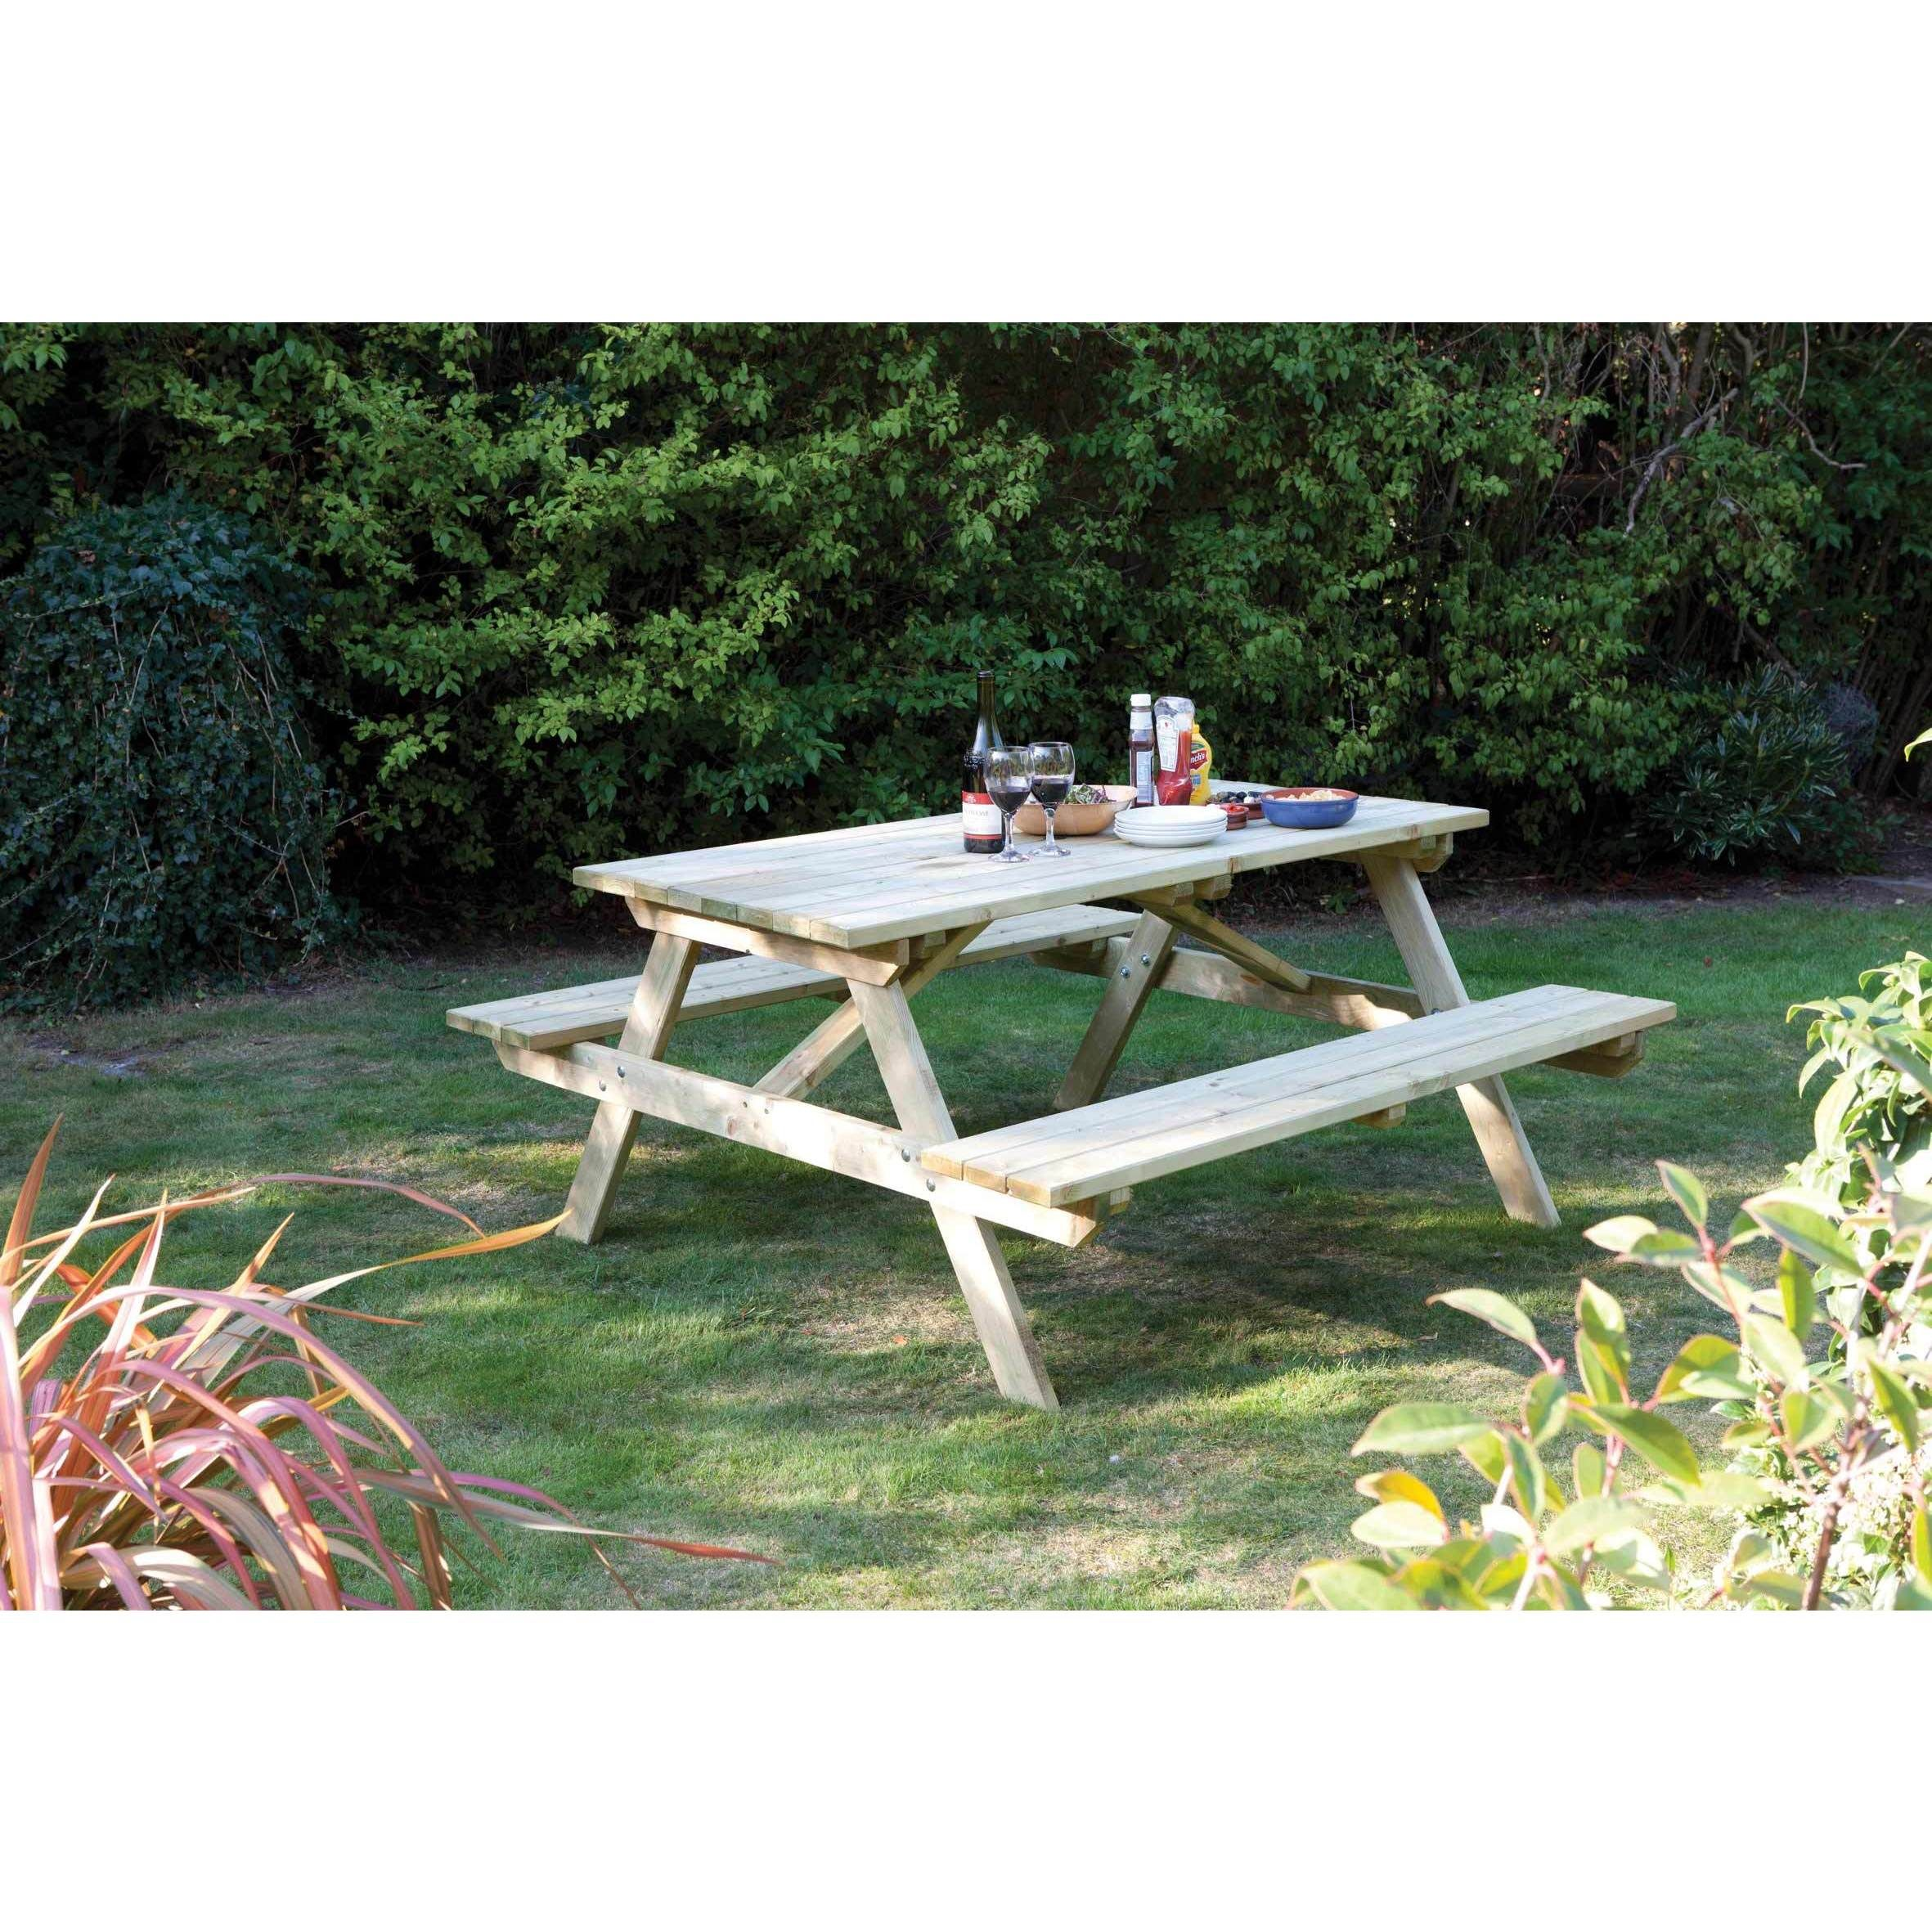 Overstock Com Online Shopping Bedding Furniture Electronics Jewelry Clothing More Picnic Table Wooden Garden Furniture Picnic Bench